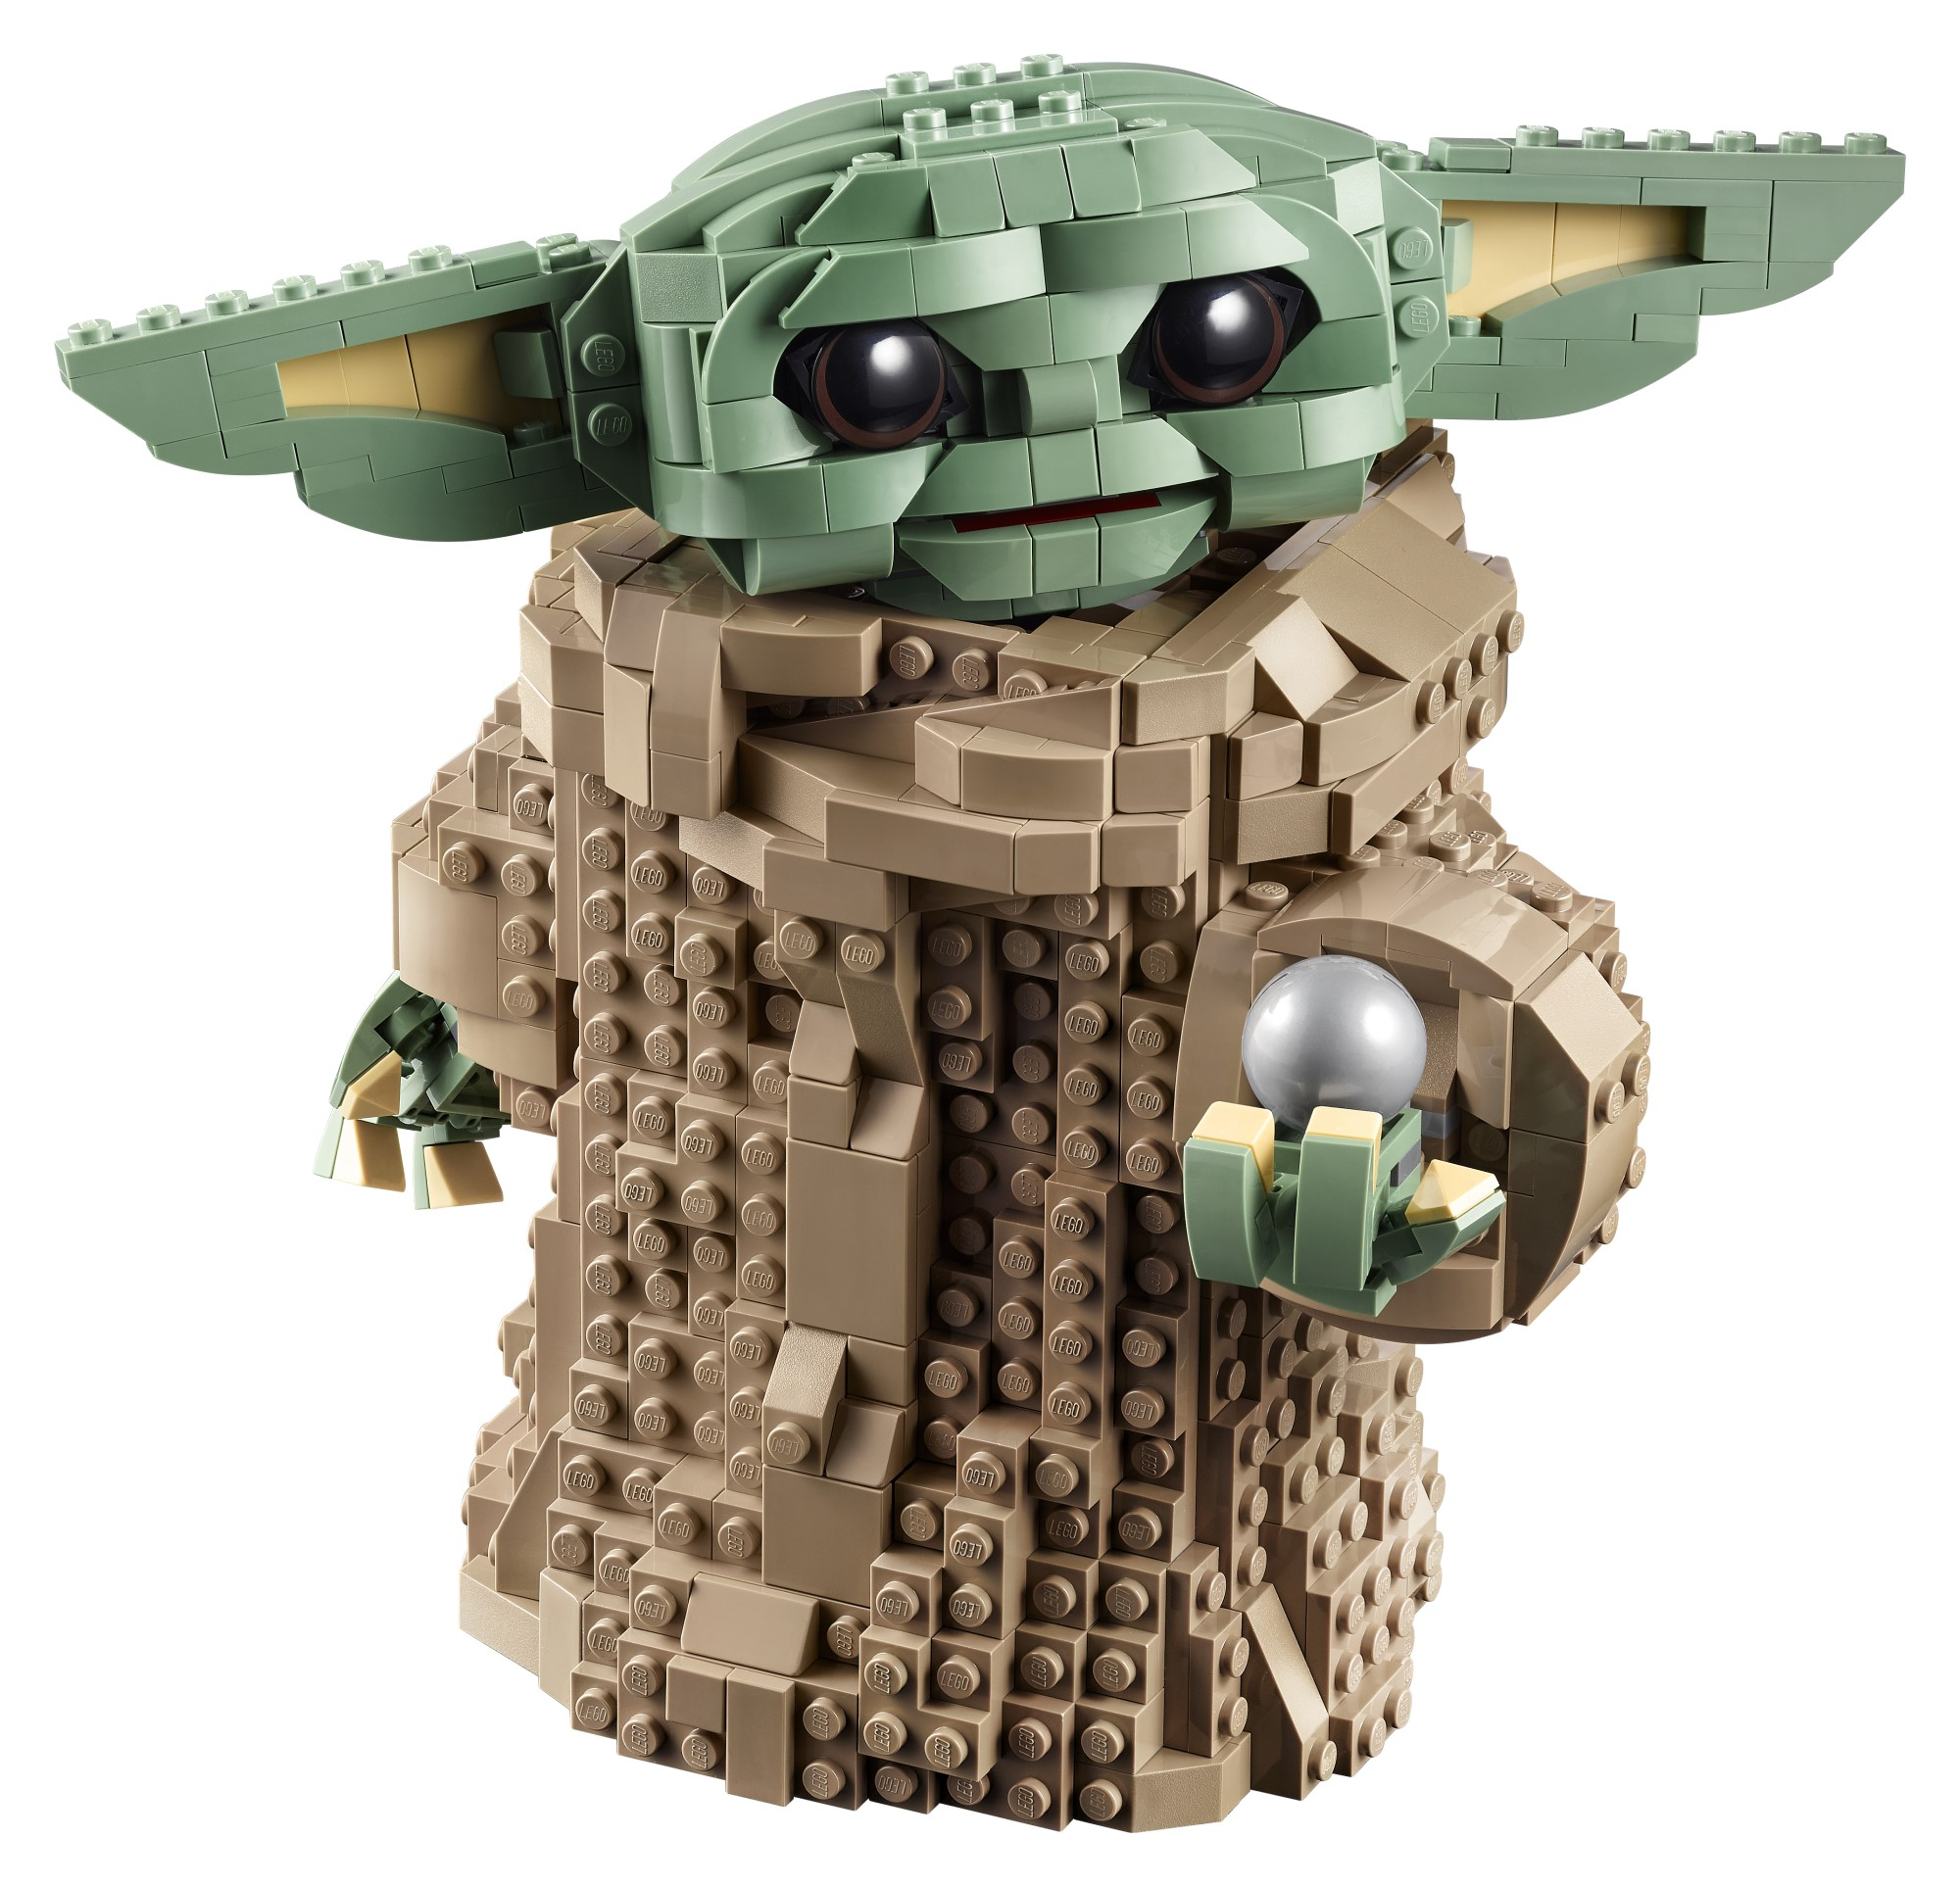 This adorable Baby Yoda LEGO model is now available for pre-order 14